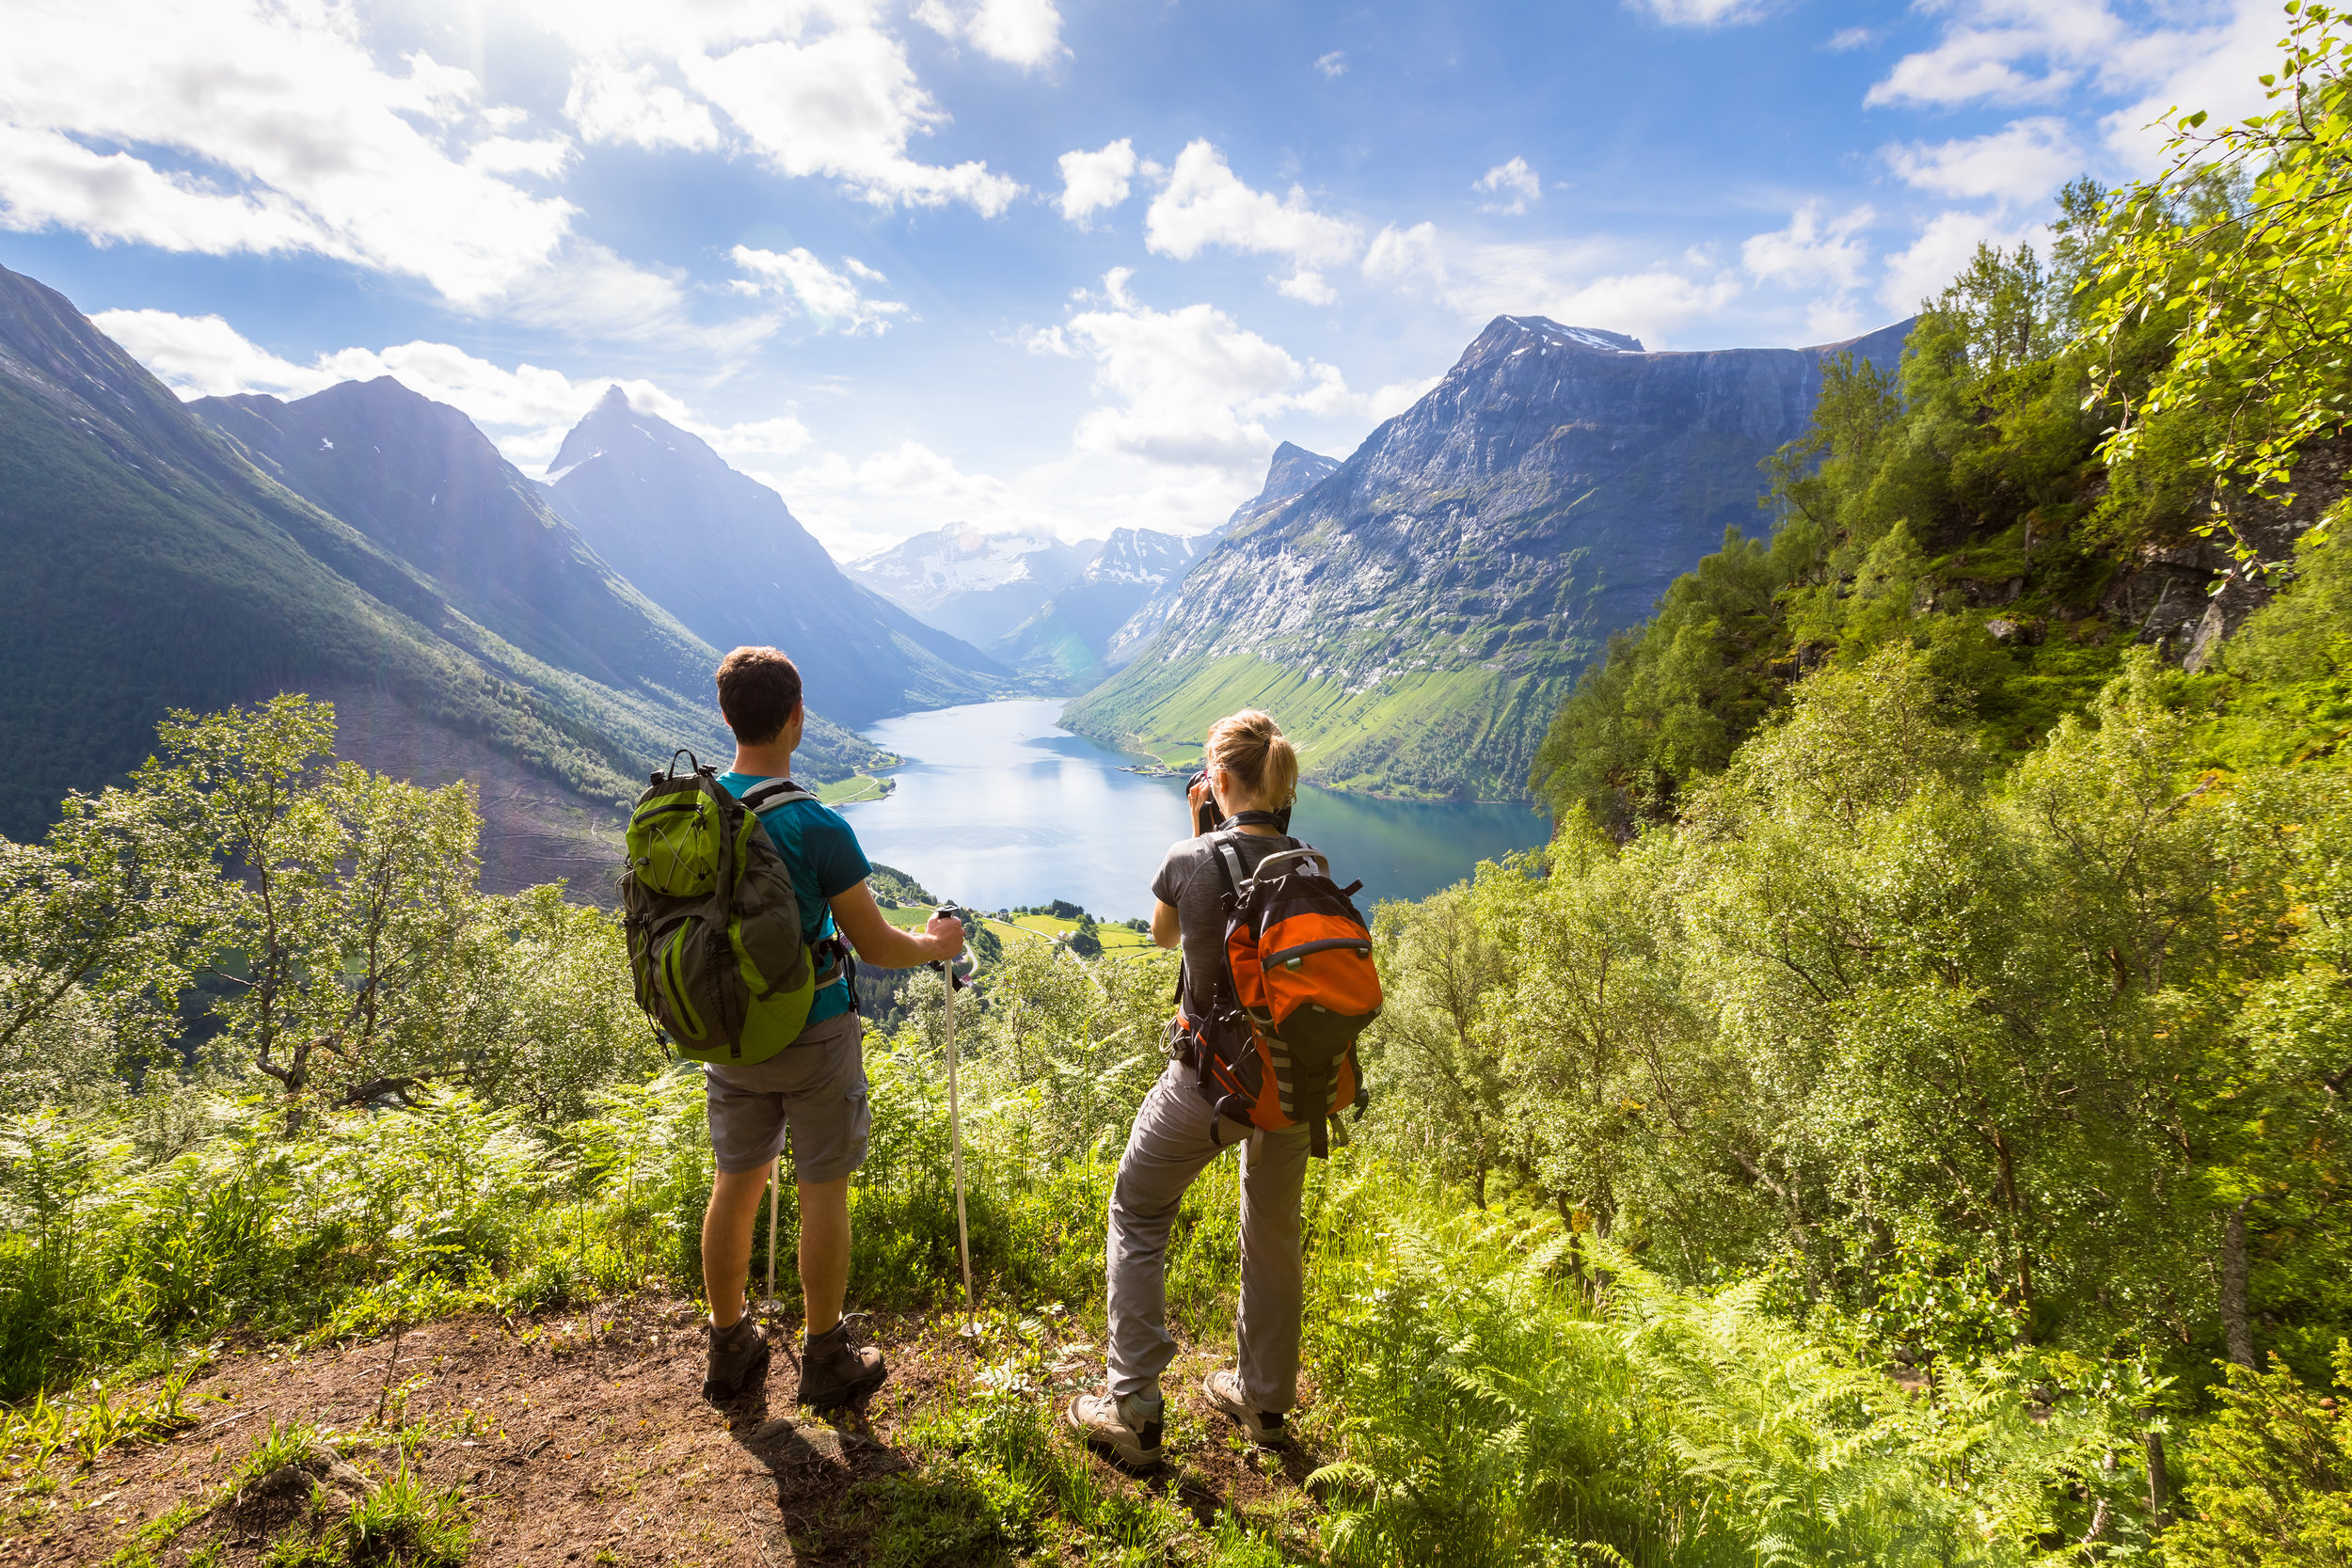 Two-hikers-at-viewpoint--in-mountains-with-lake,-sunny-summer-814397912_4800x3200.jpeg